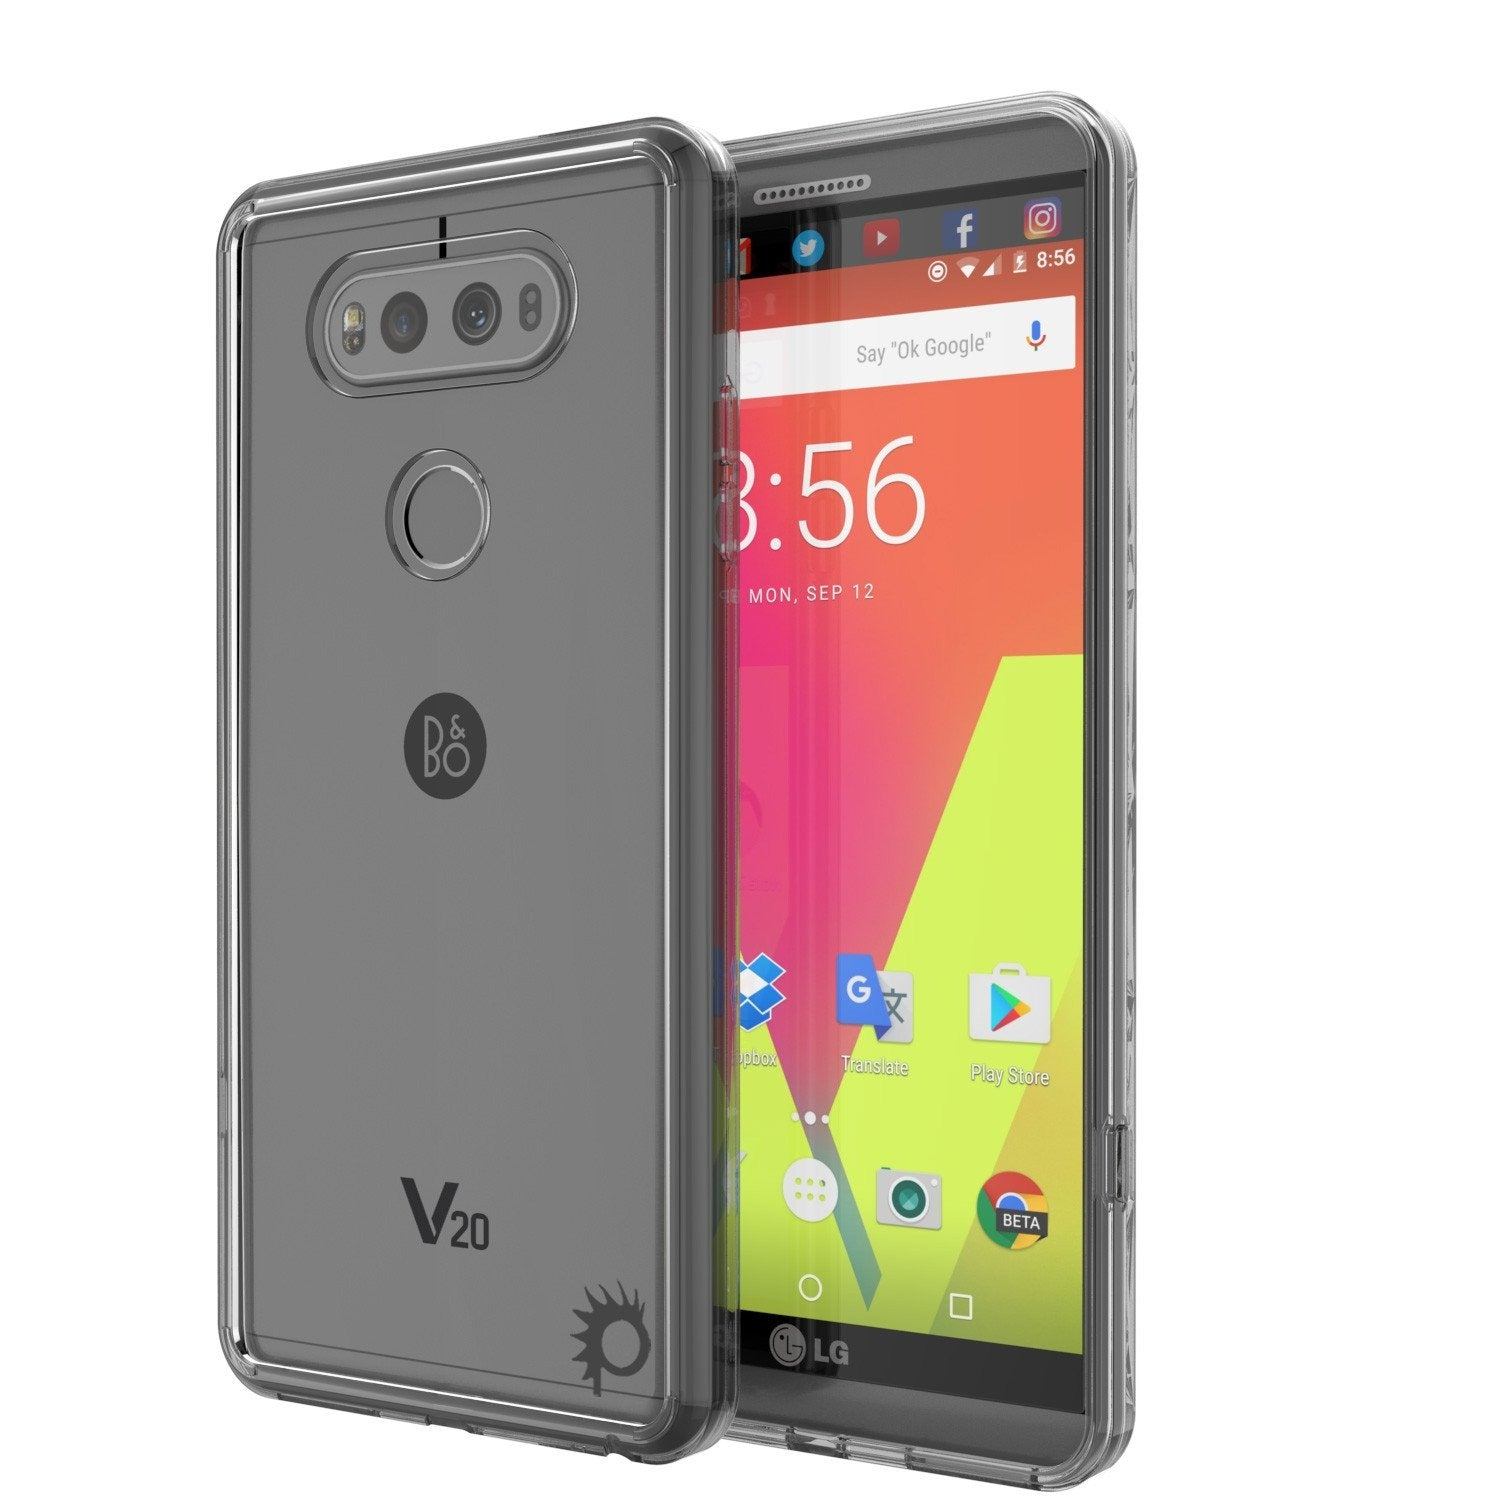 LG v20 Case Punkcase® LUCID 2.0 Crystal Black Series w/ PUNK SHIELD Glass Screen Protector | Ultra Fit